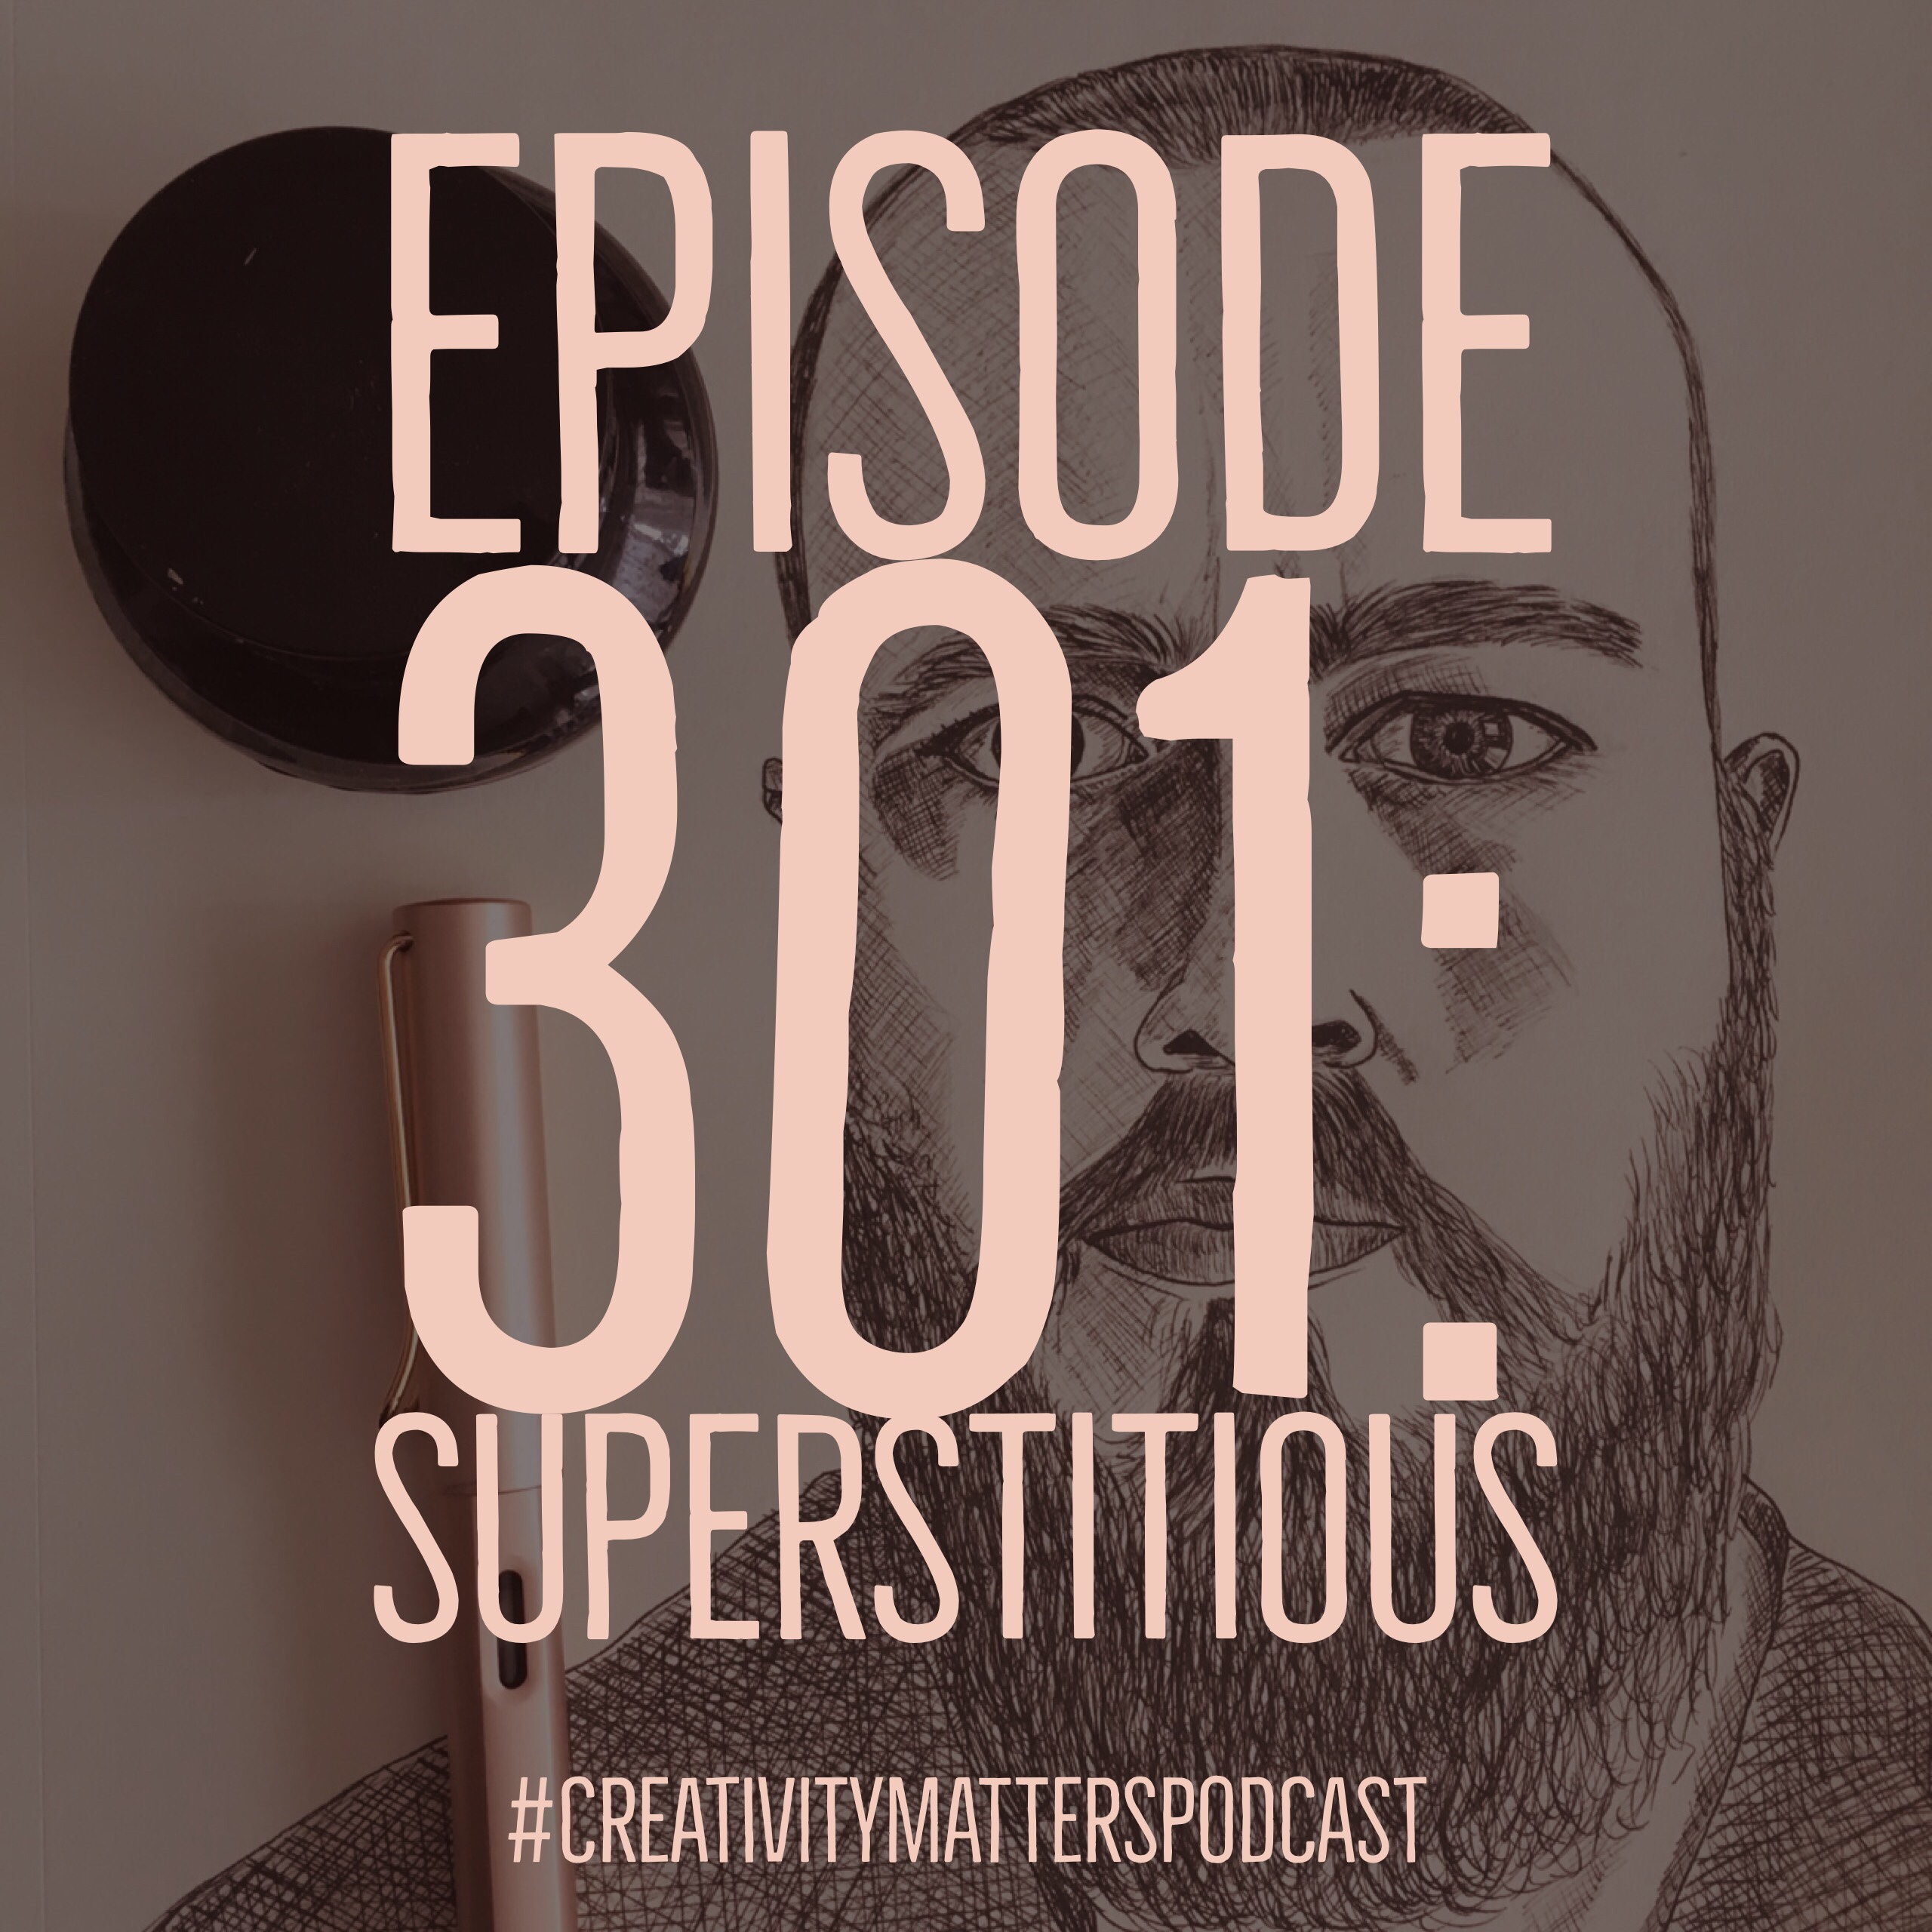 Episode 301: Superstitious